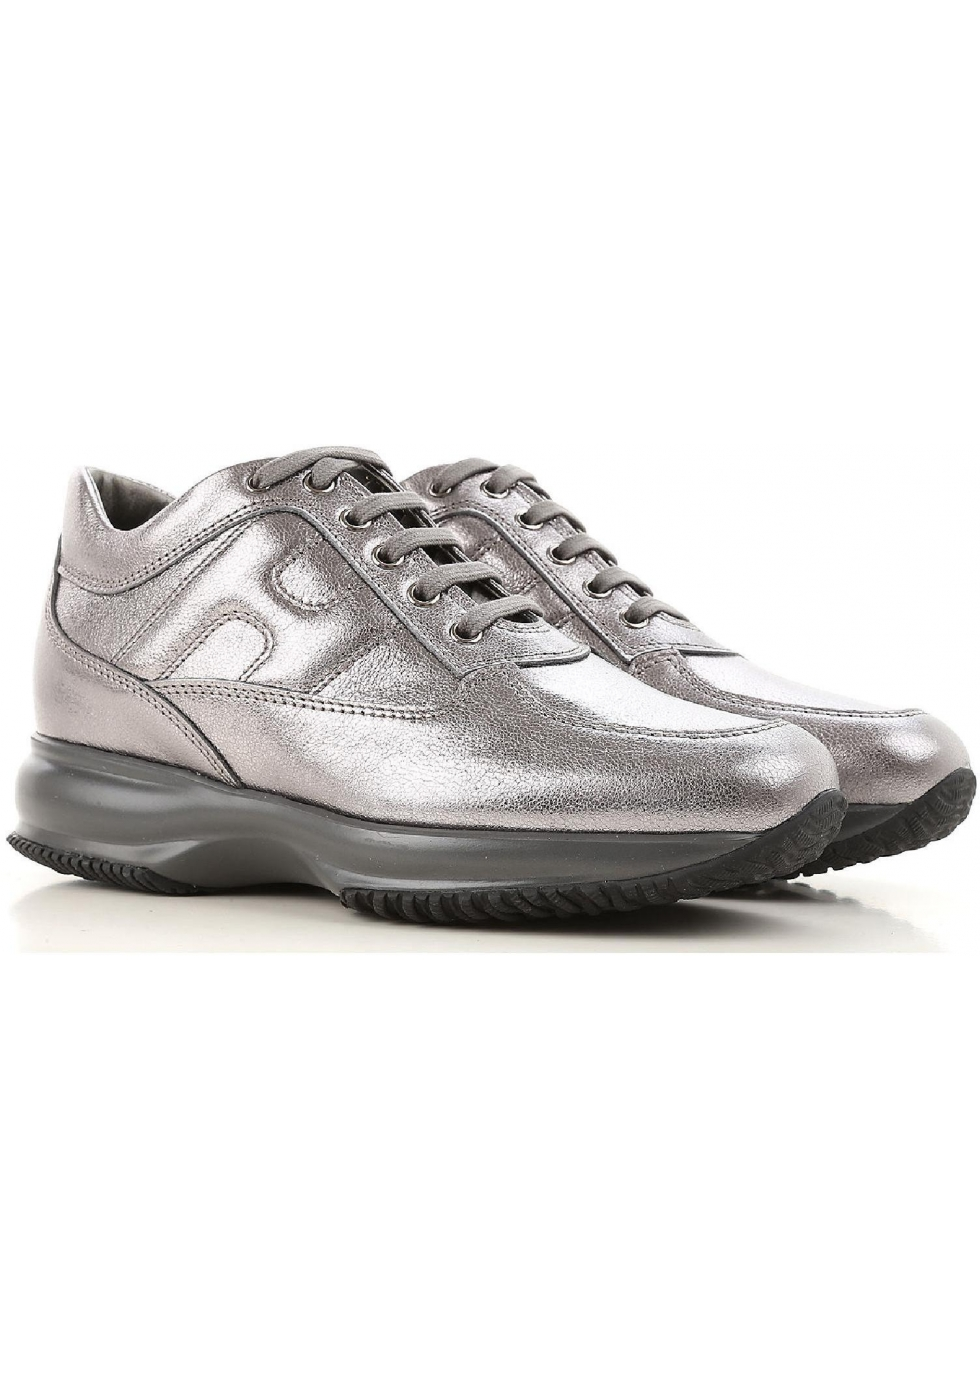 Hogan interactive women's sneakers in silver leather